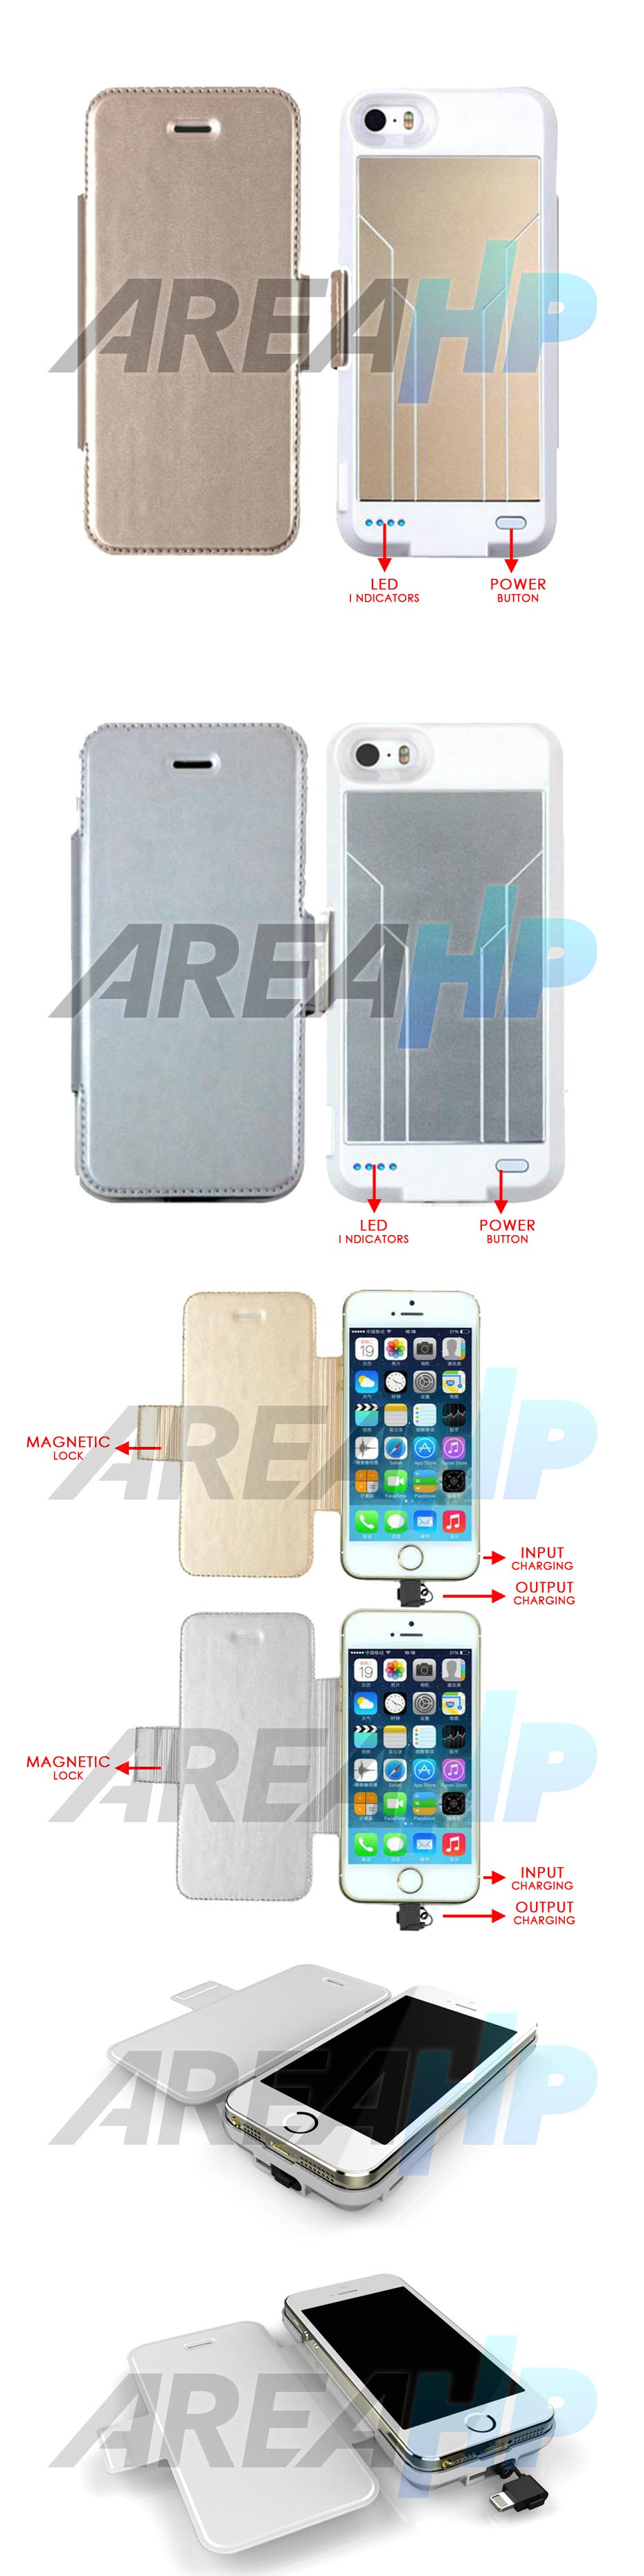 Keva Power Case Flip Cover 3000mAh For iPhone 5, 5S Overview